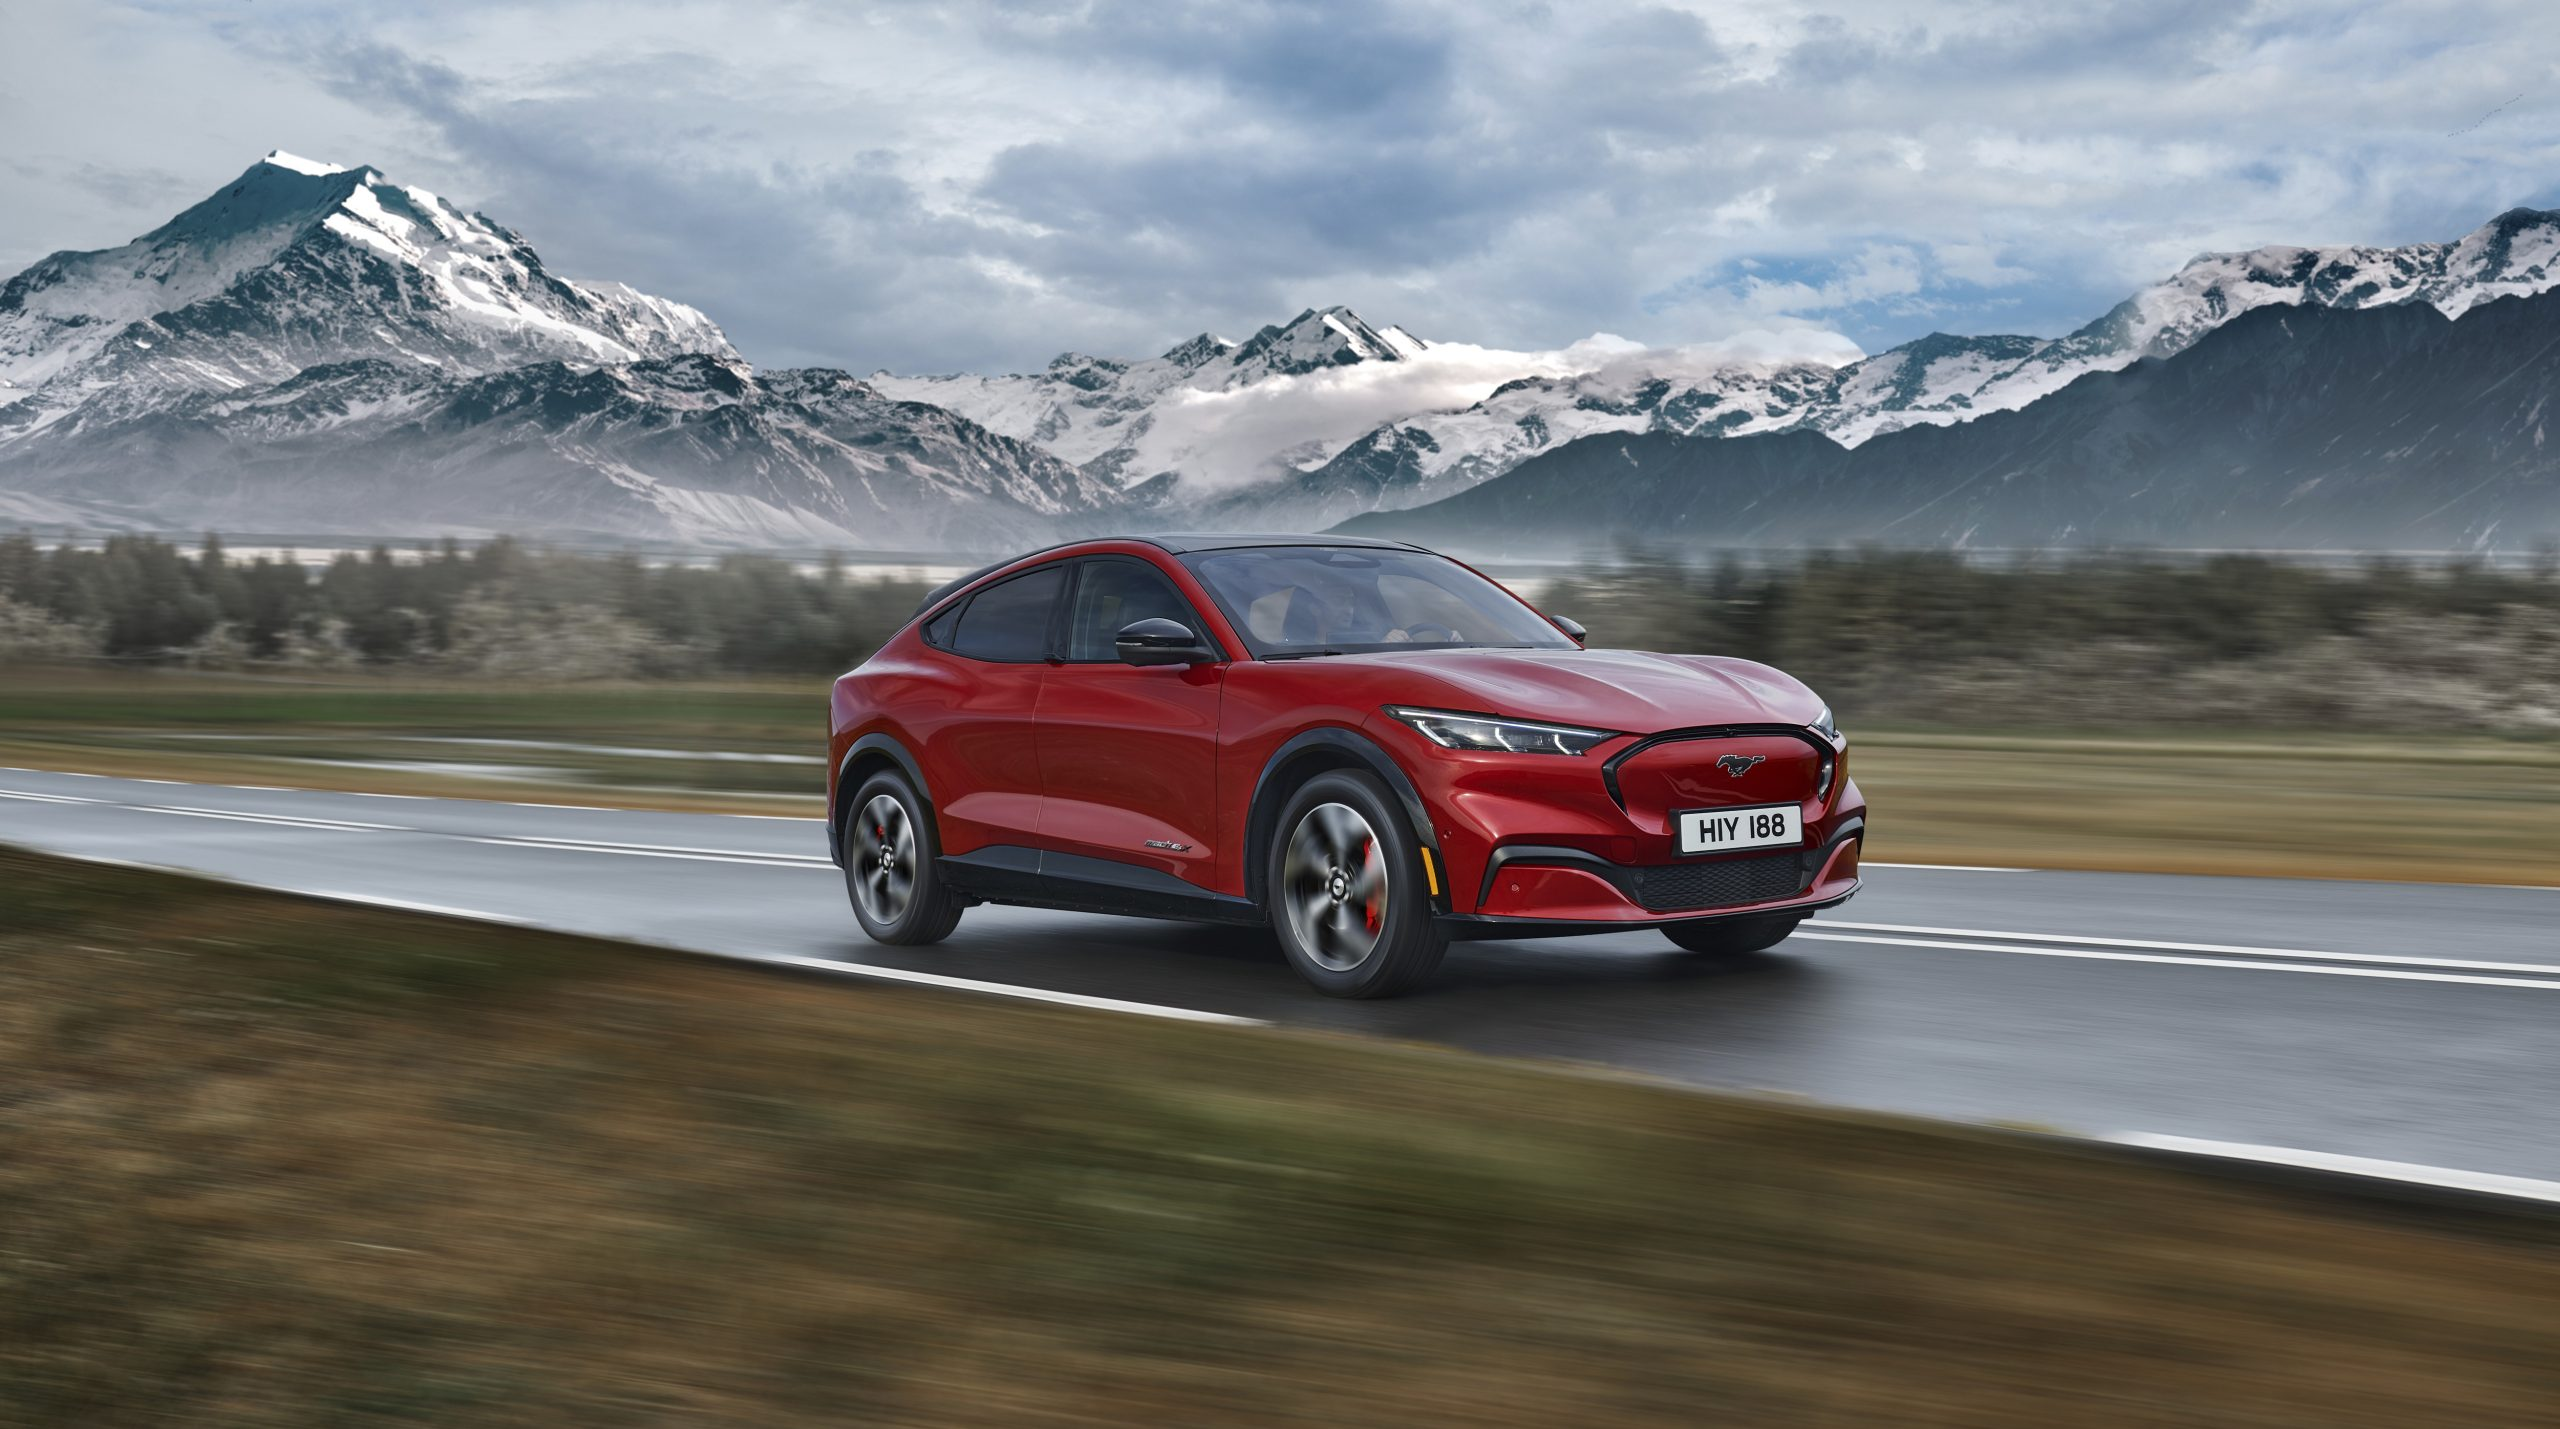 2020 FORD MACH E AWD 23 scaled Από 51.587 ευρώ η τιμή της Ford Mustang Mach-E στην Ελλάδα